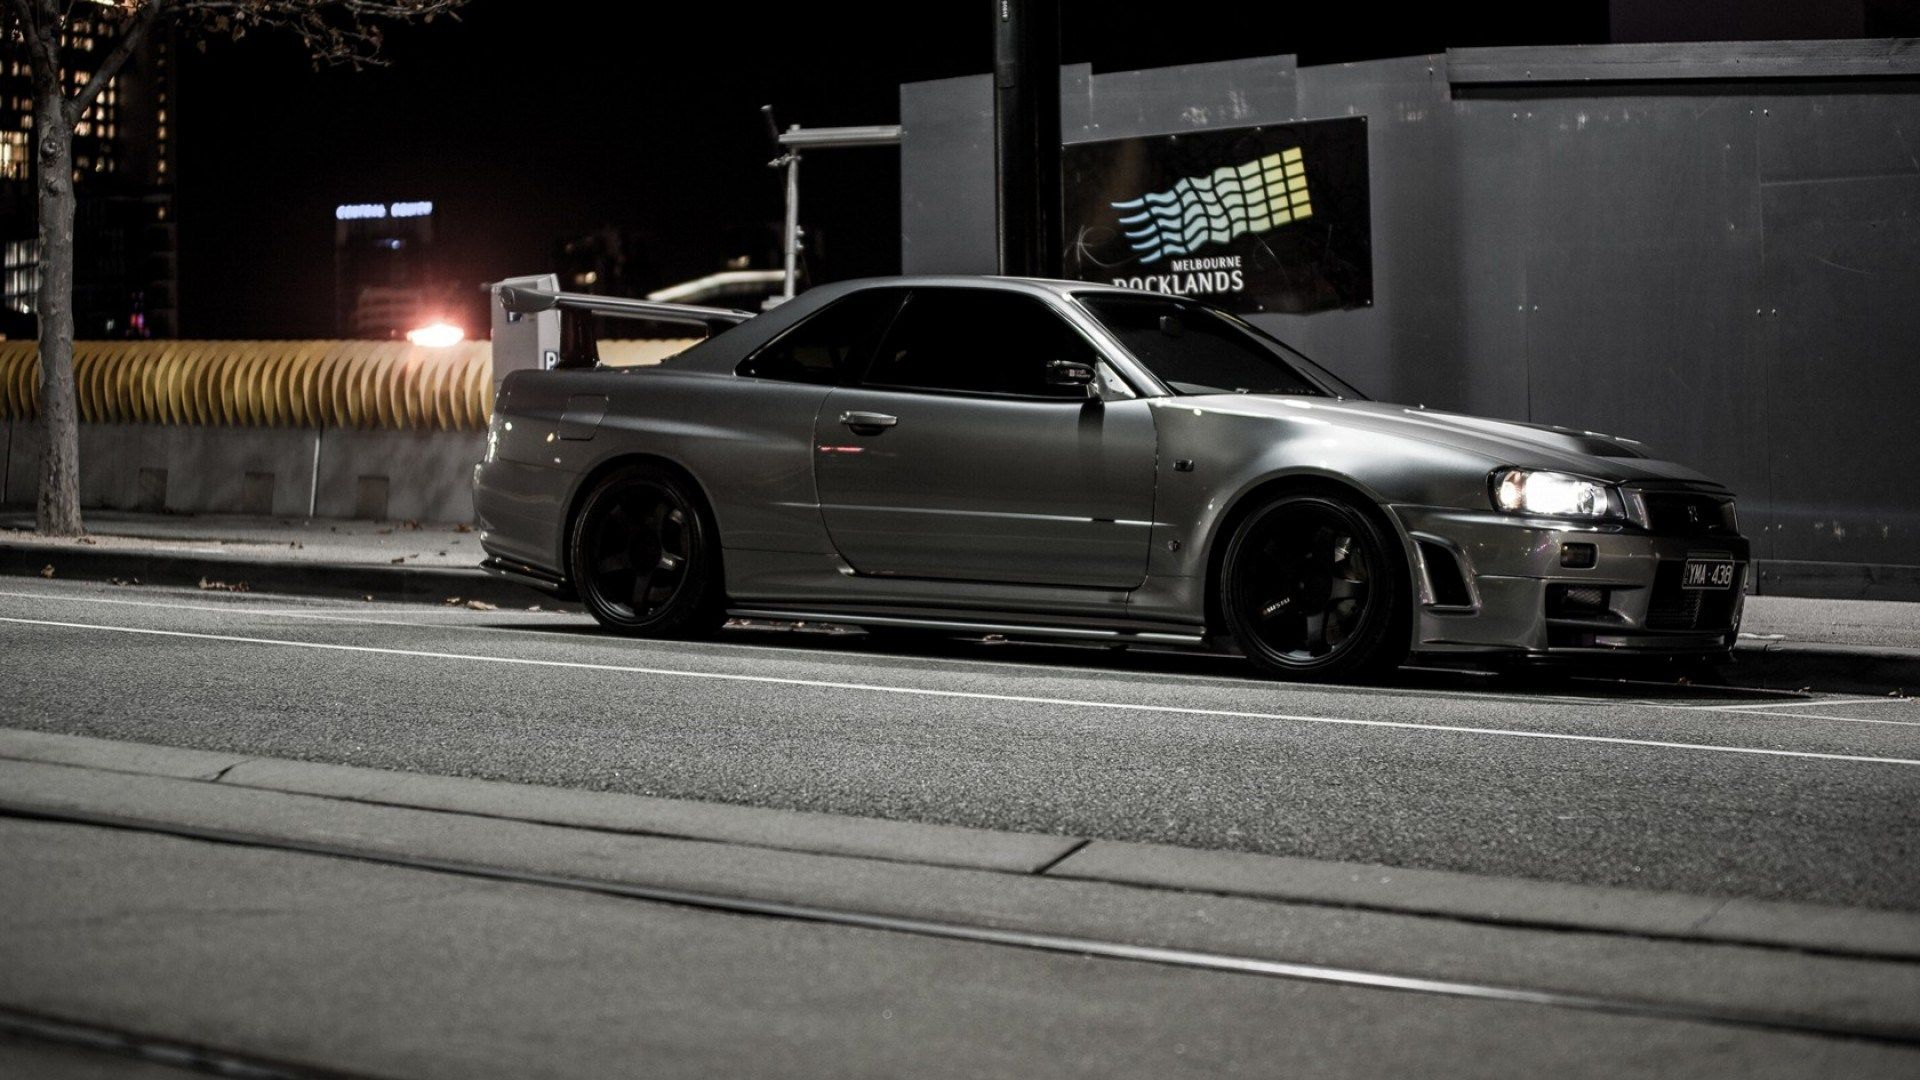 Wallpaper Gtr Skyline Best Wallpaper 2048×1276 Nissan Skyline GTR R34  Wallpapers (51 Wallpapers